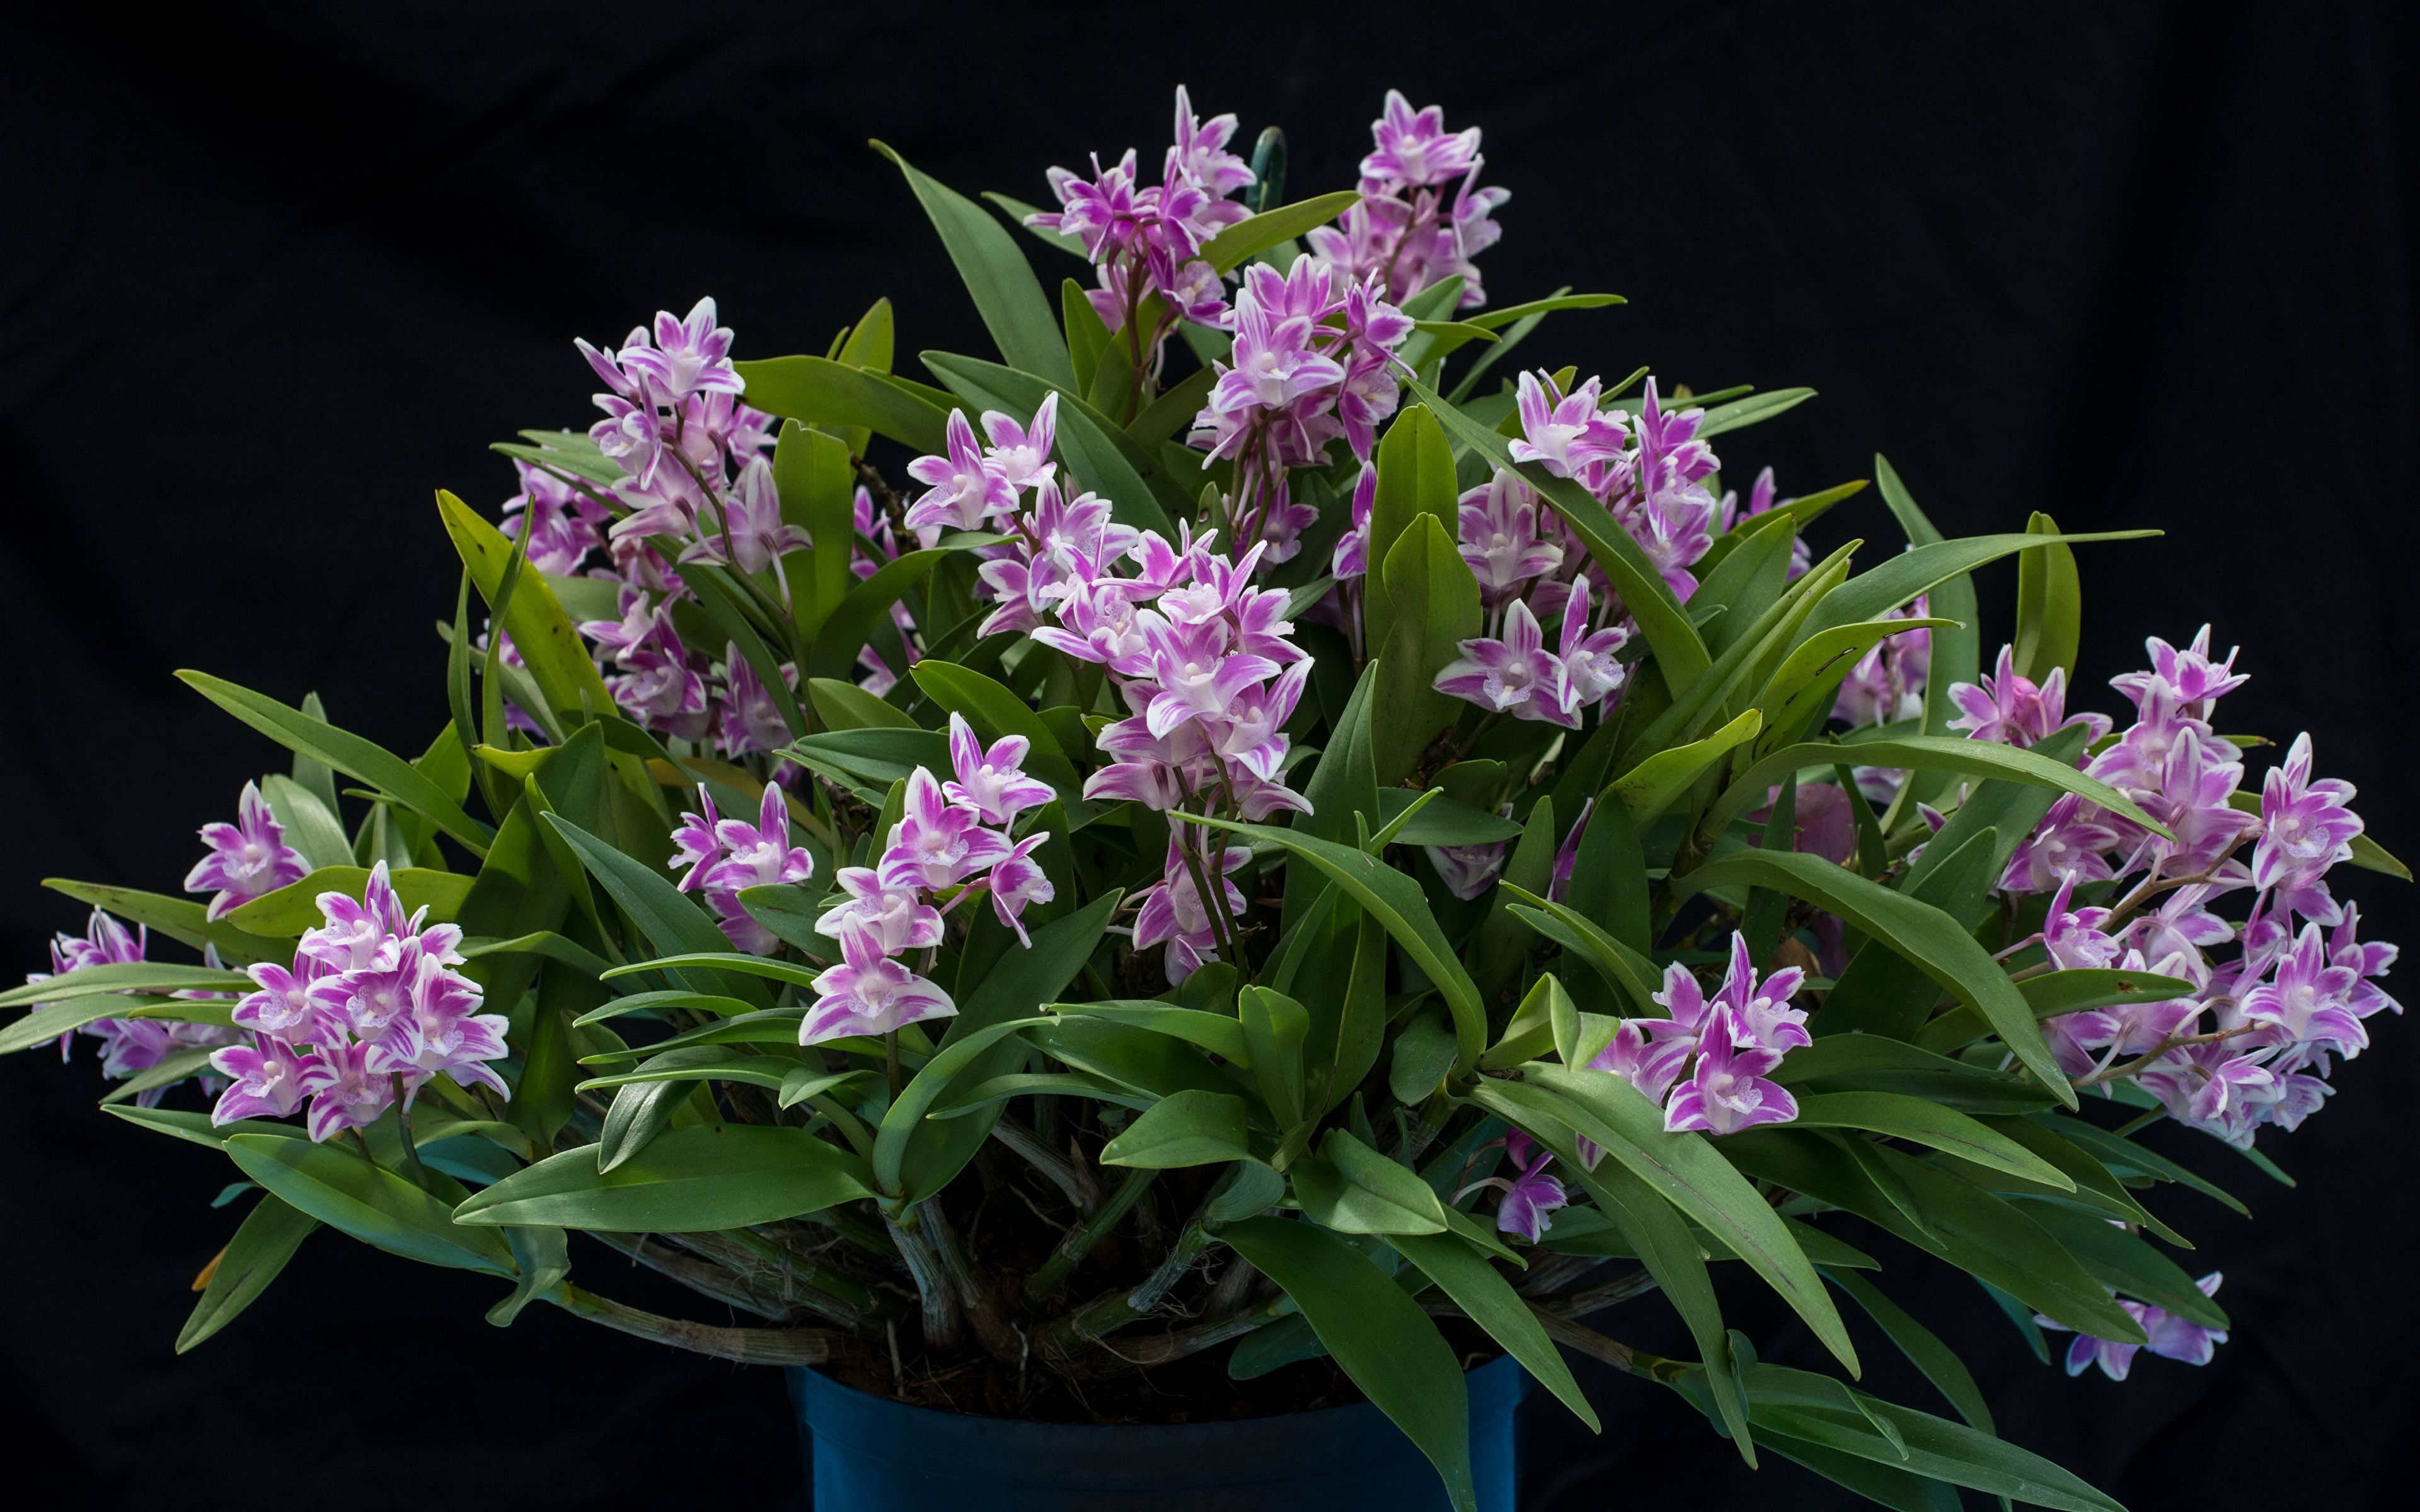 3840x2400 Wallpaper Orchid Flowers Black background 3840x2400